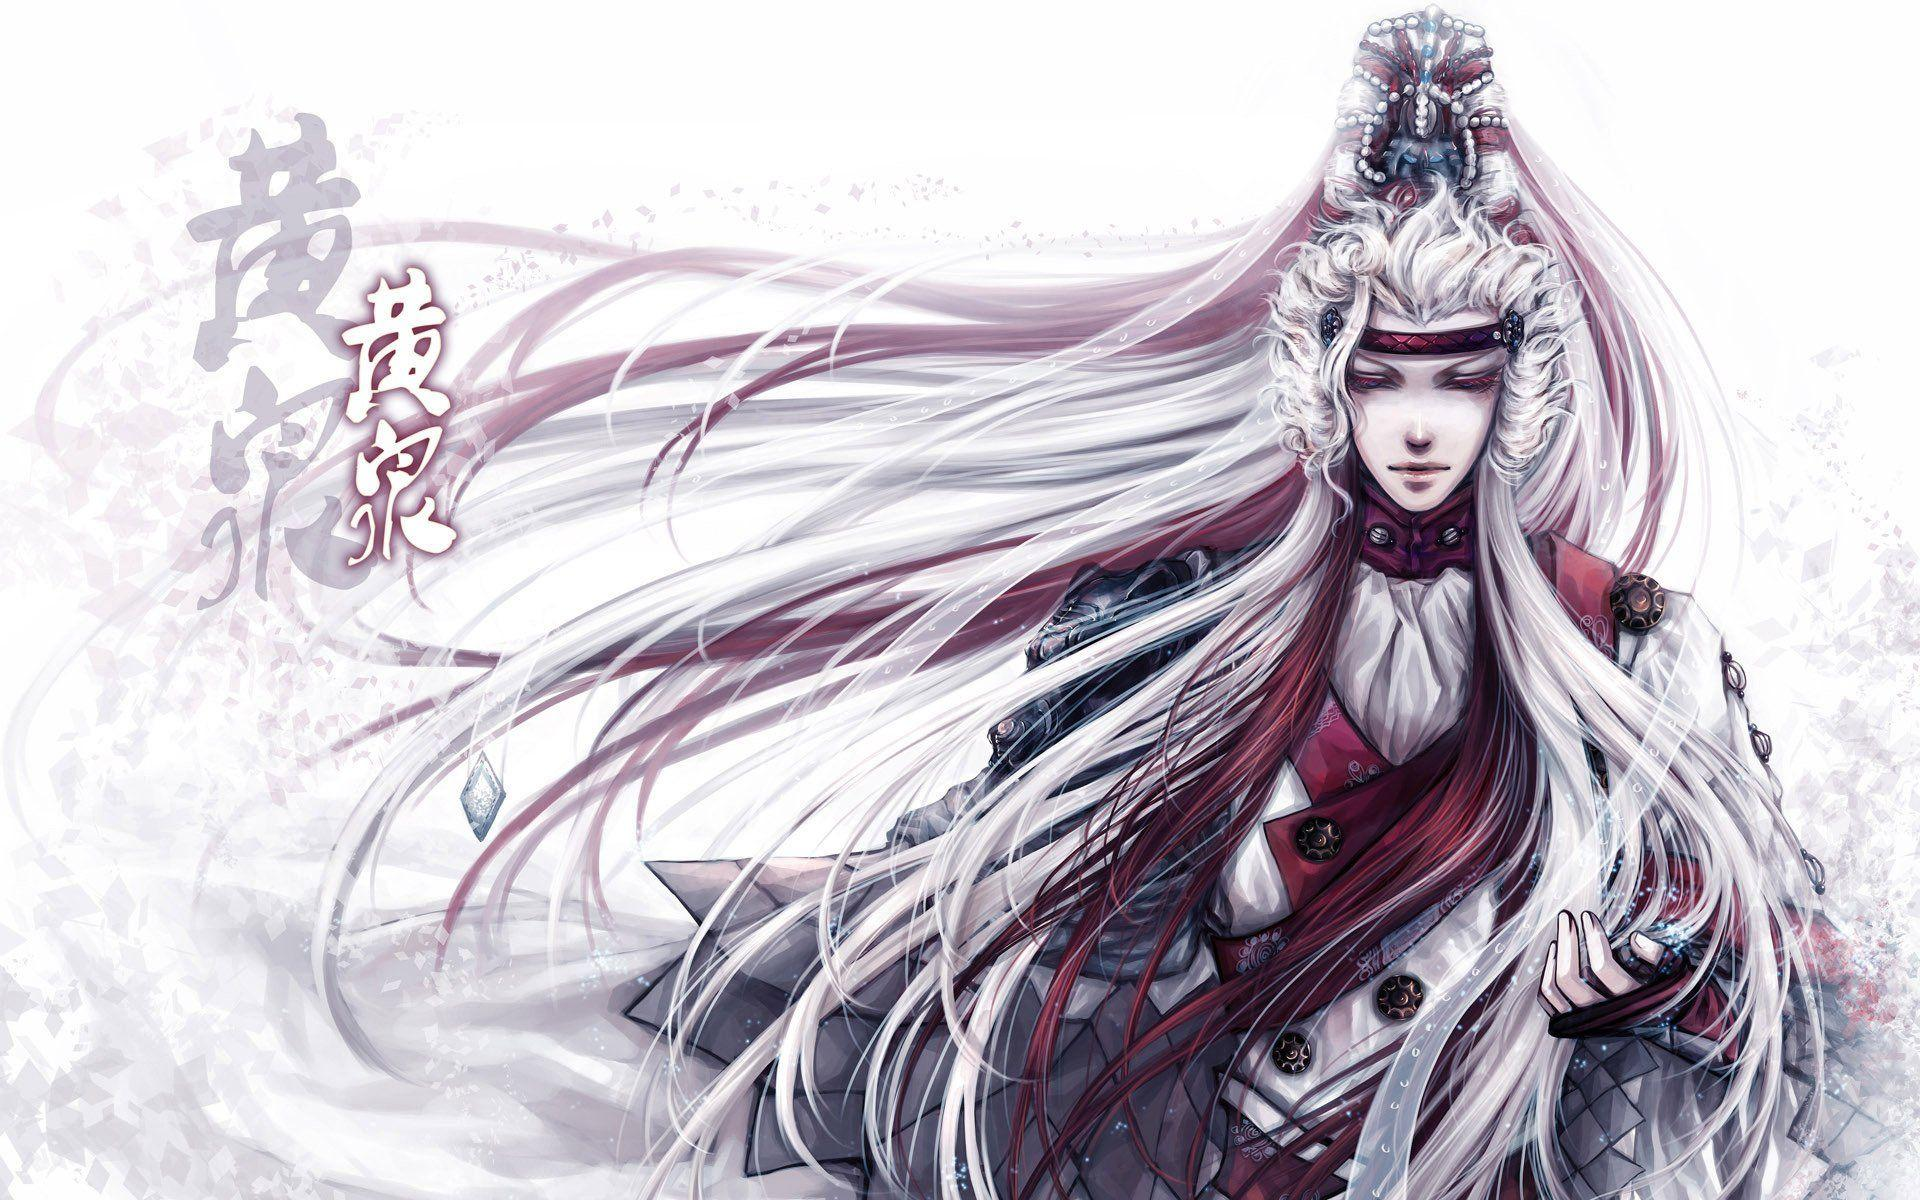 Anime Queen Wallpaper  Image Pictures Free Download Wallpaper